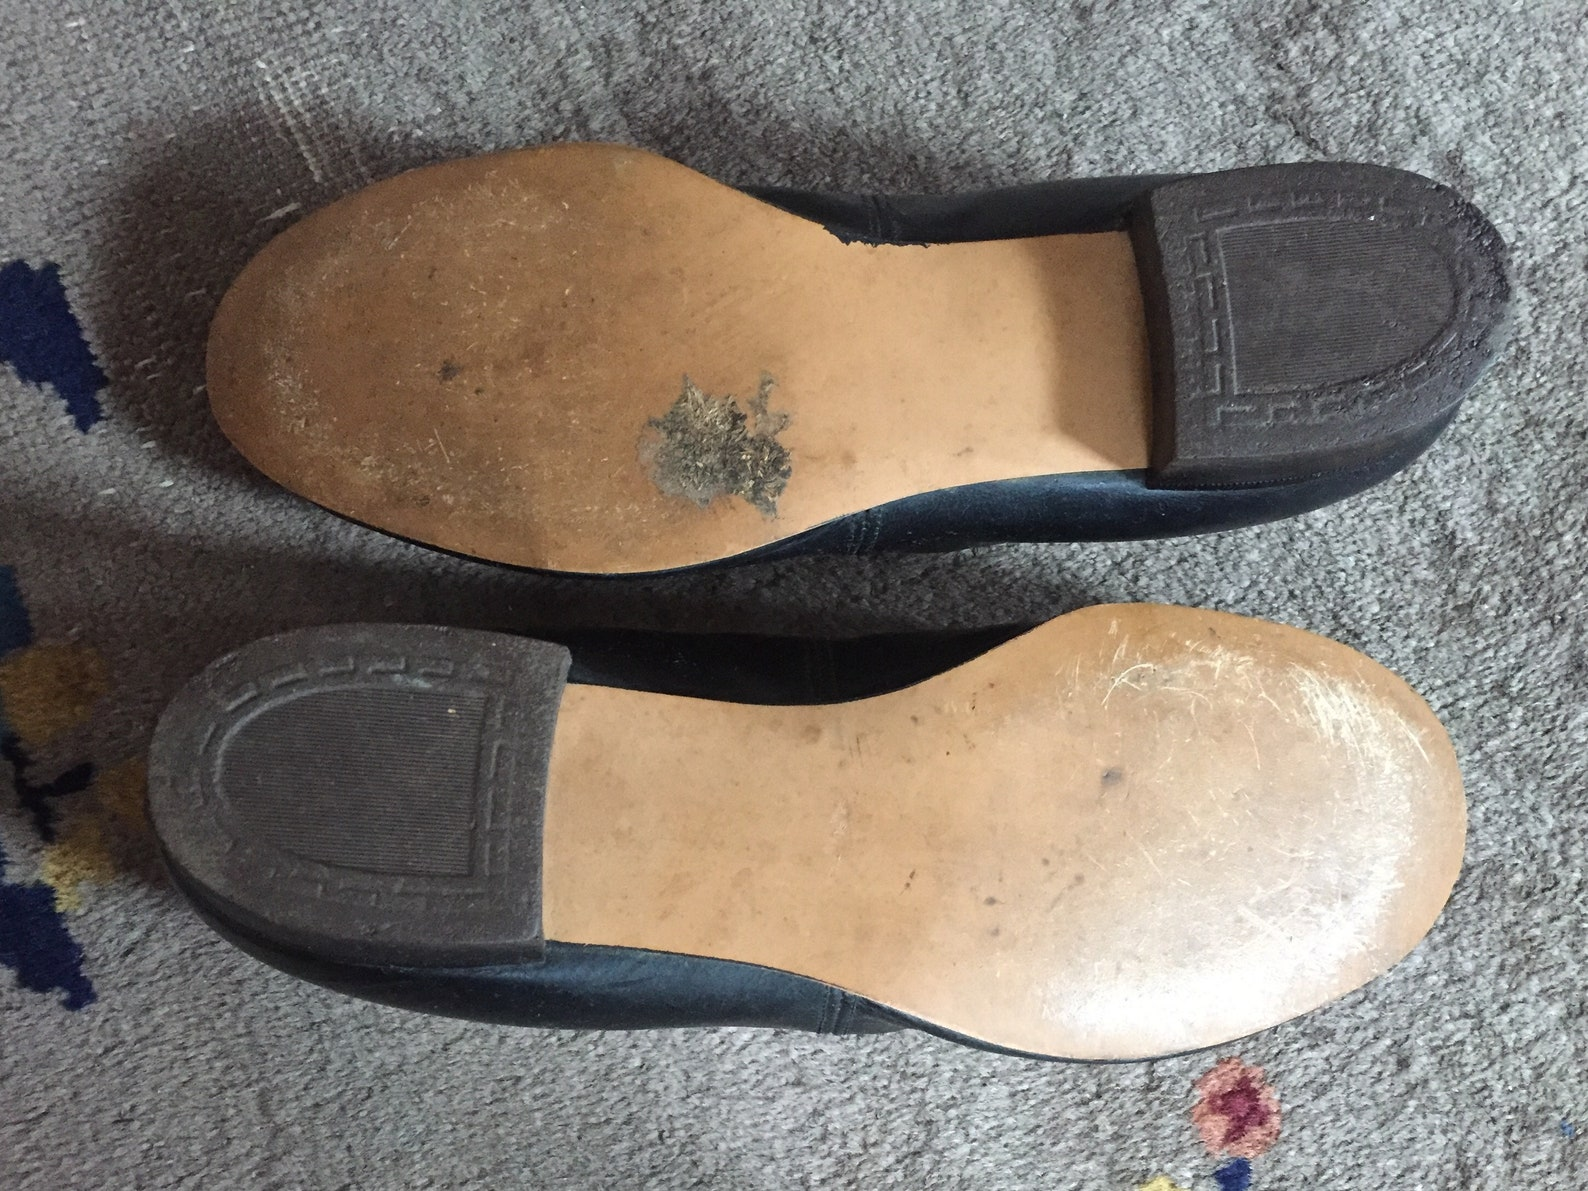 rare early pierrot-style shoes   ballet-style shoes with pom poms